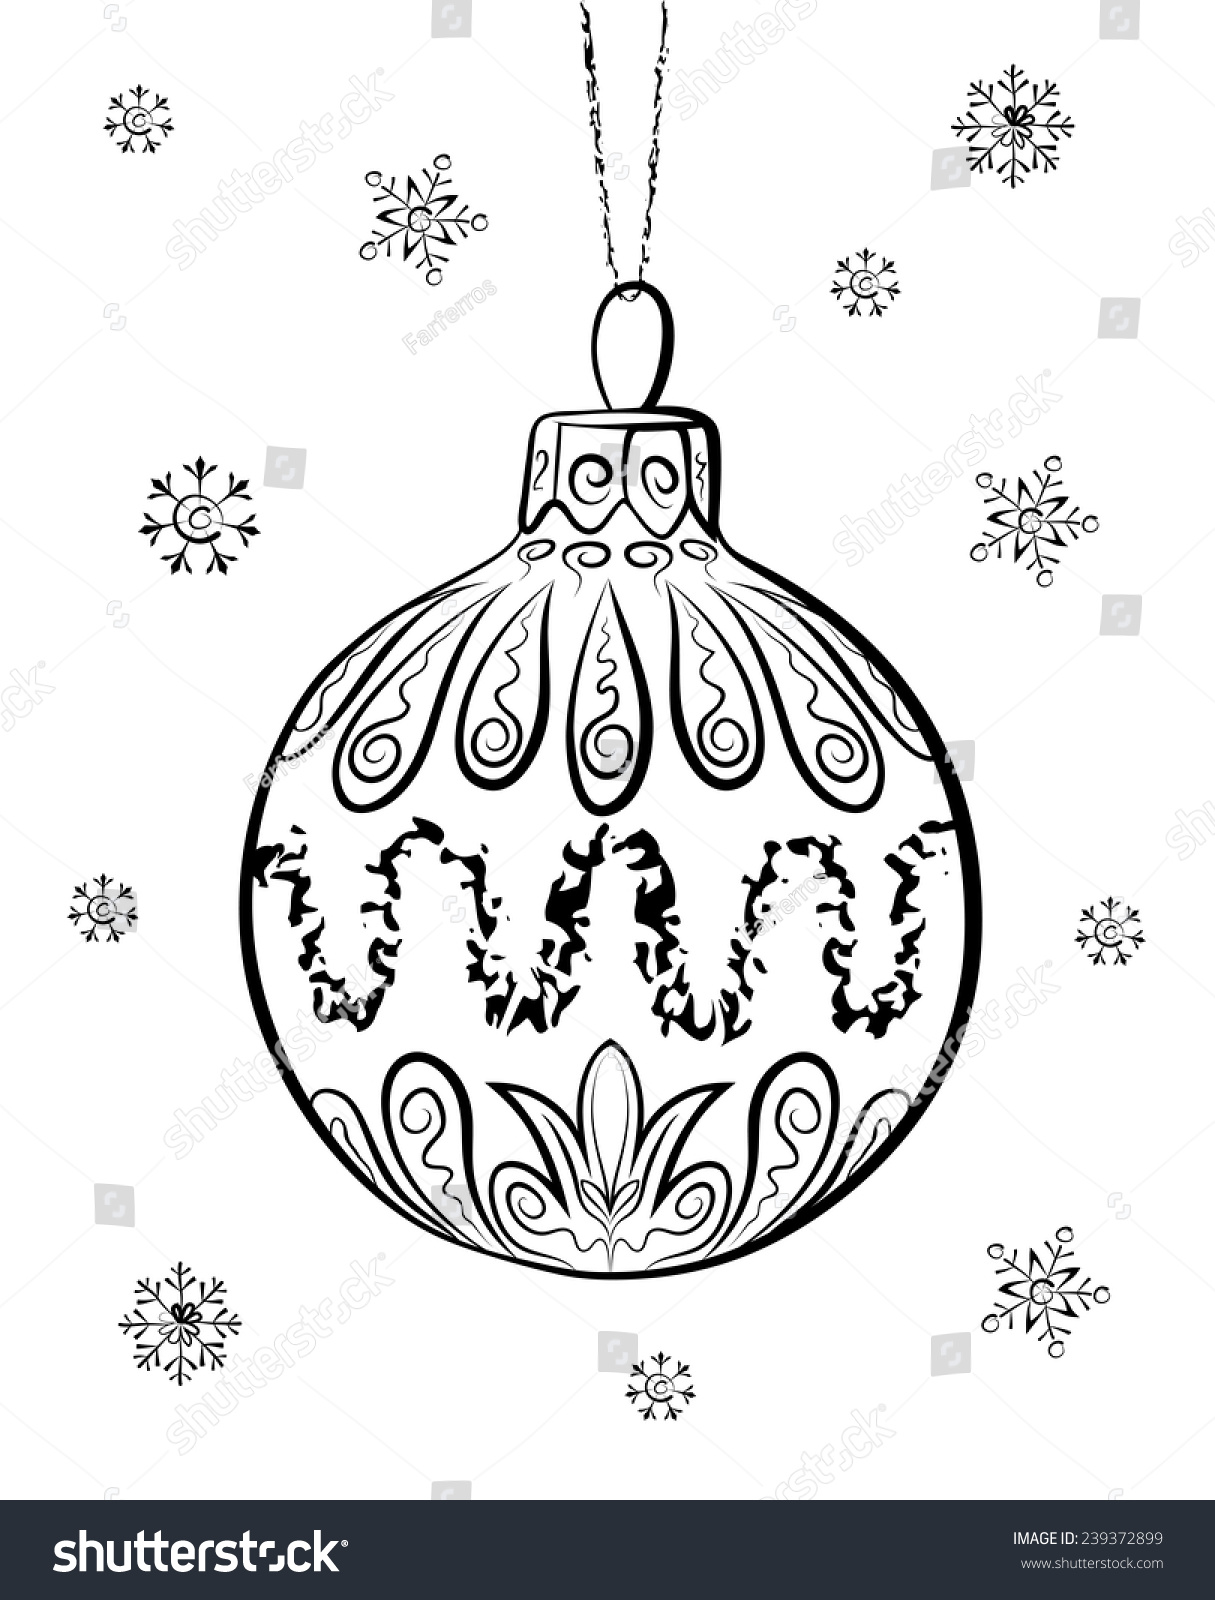 Drawing Decoration Ideas Of Vector Sketch Christmas Ball On White Stock Vector